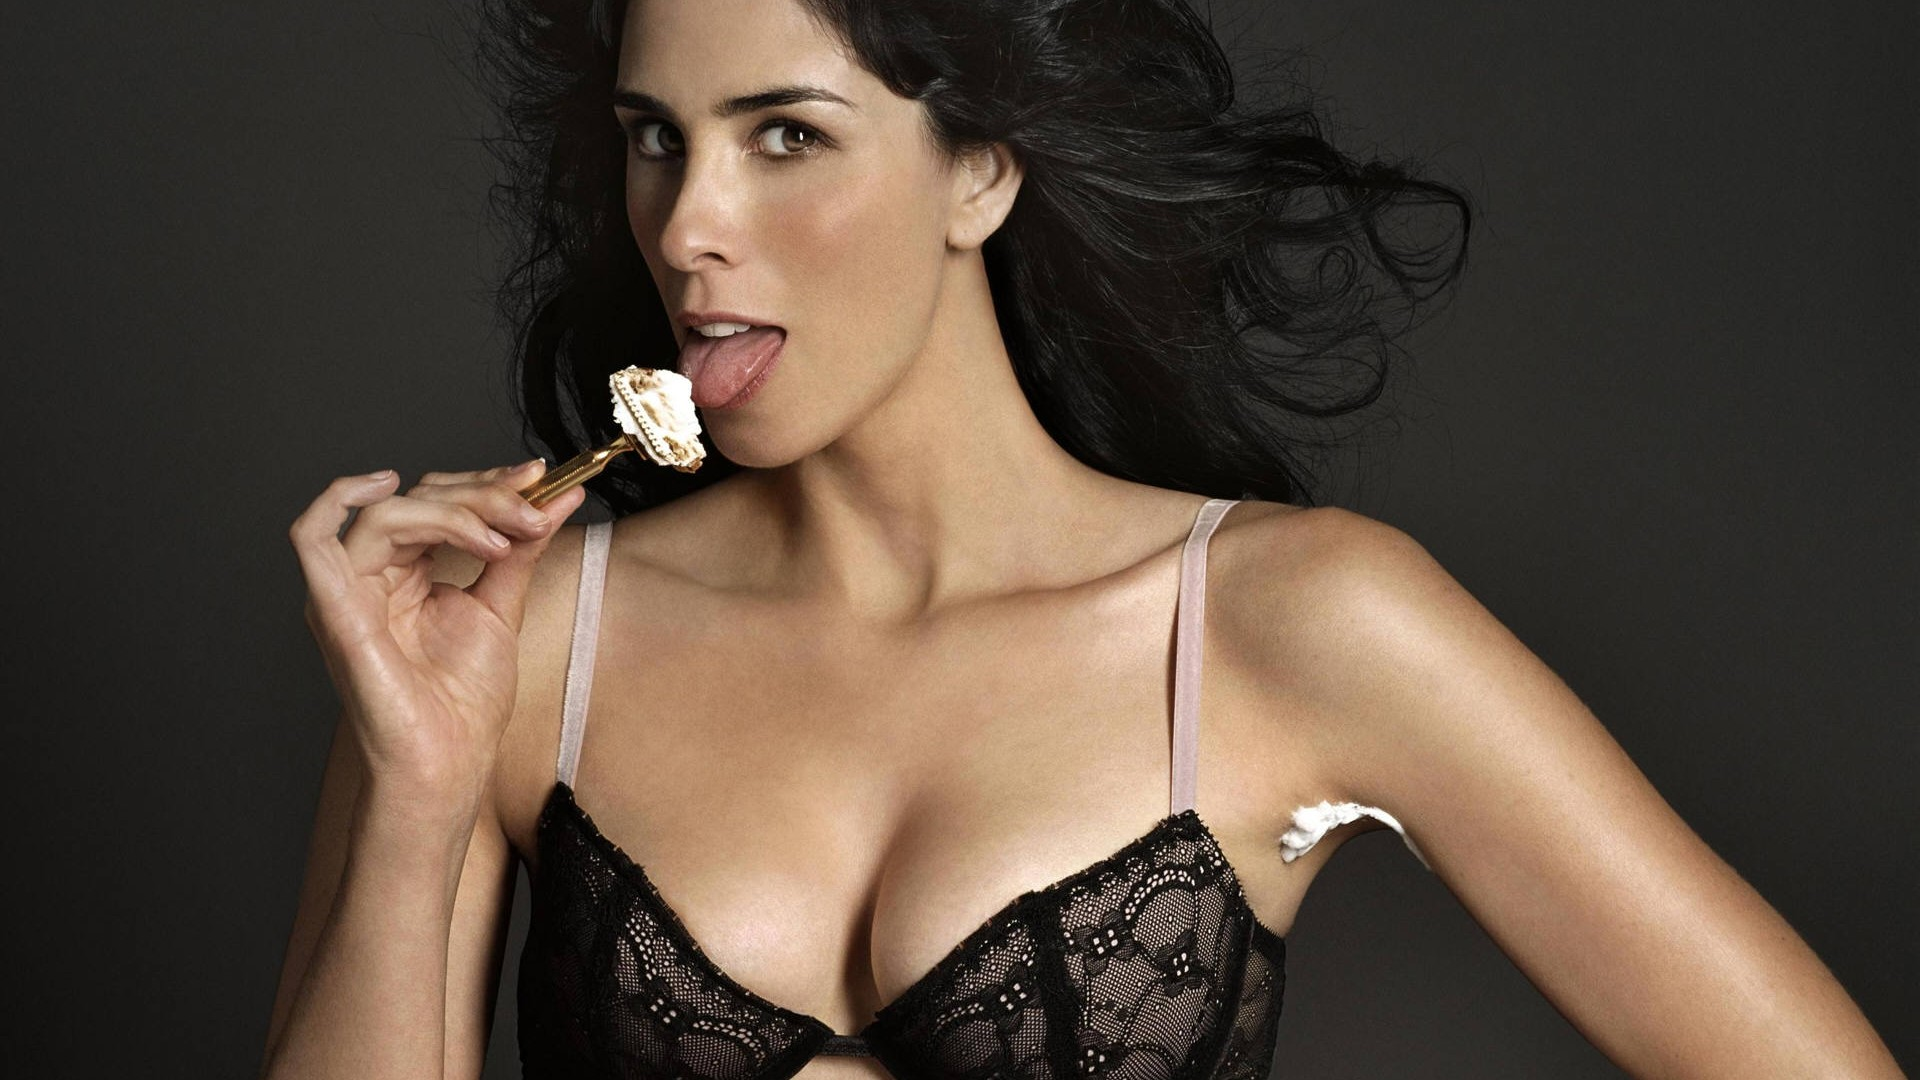 Sarah Silverman In Talks For 'A Million Ways To Die'